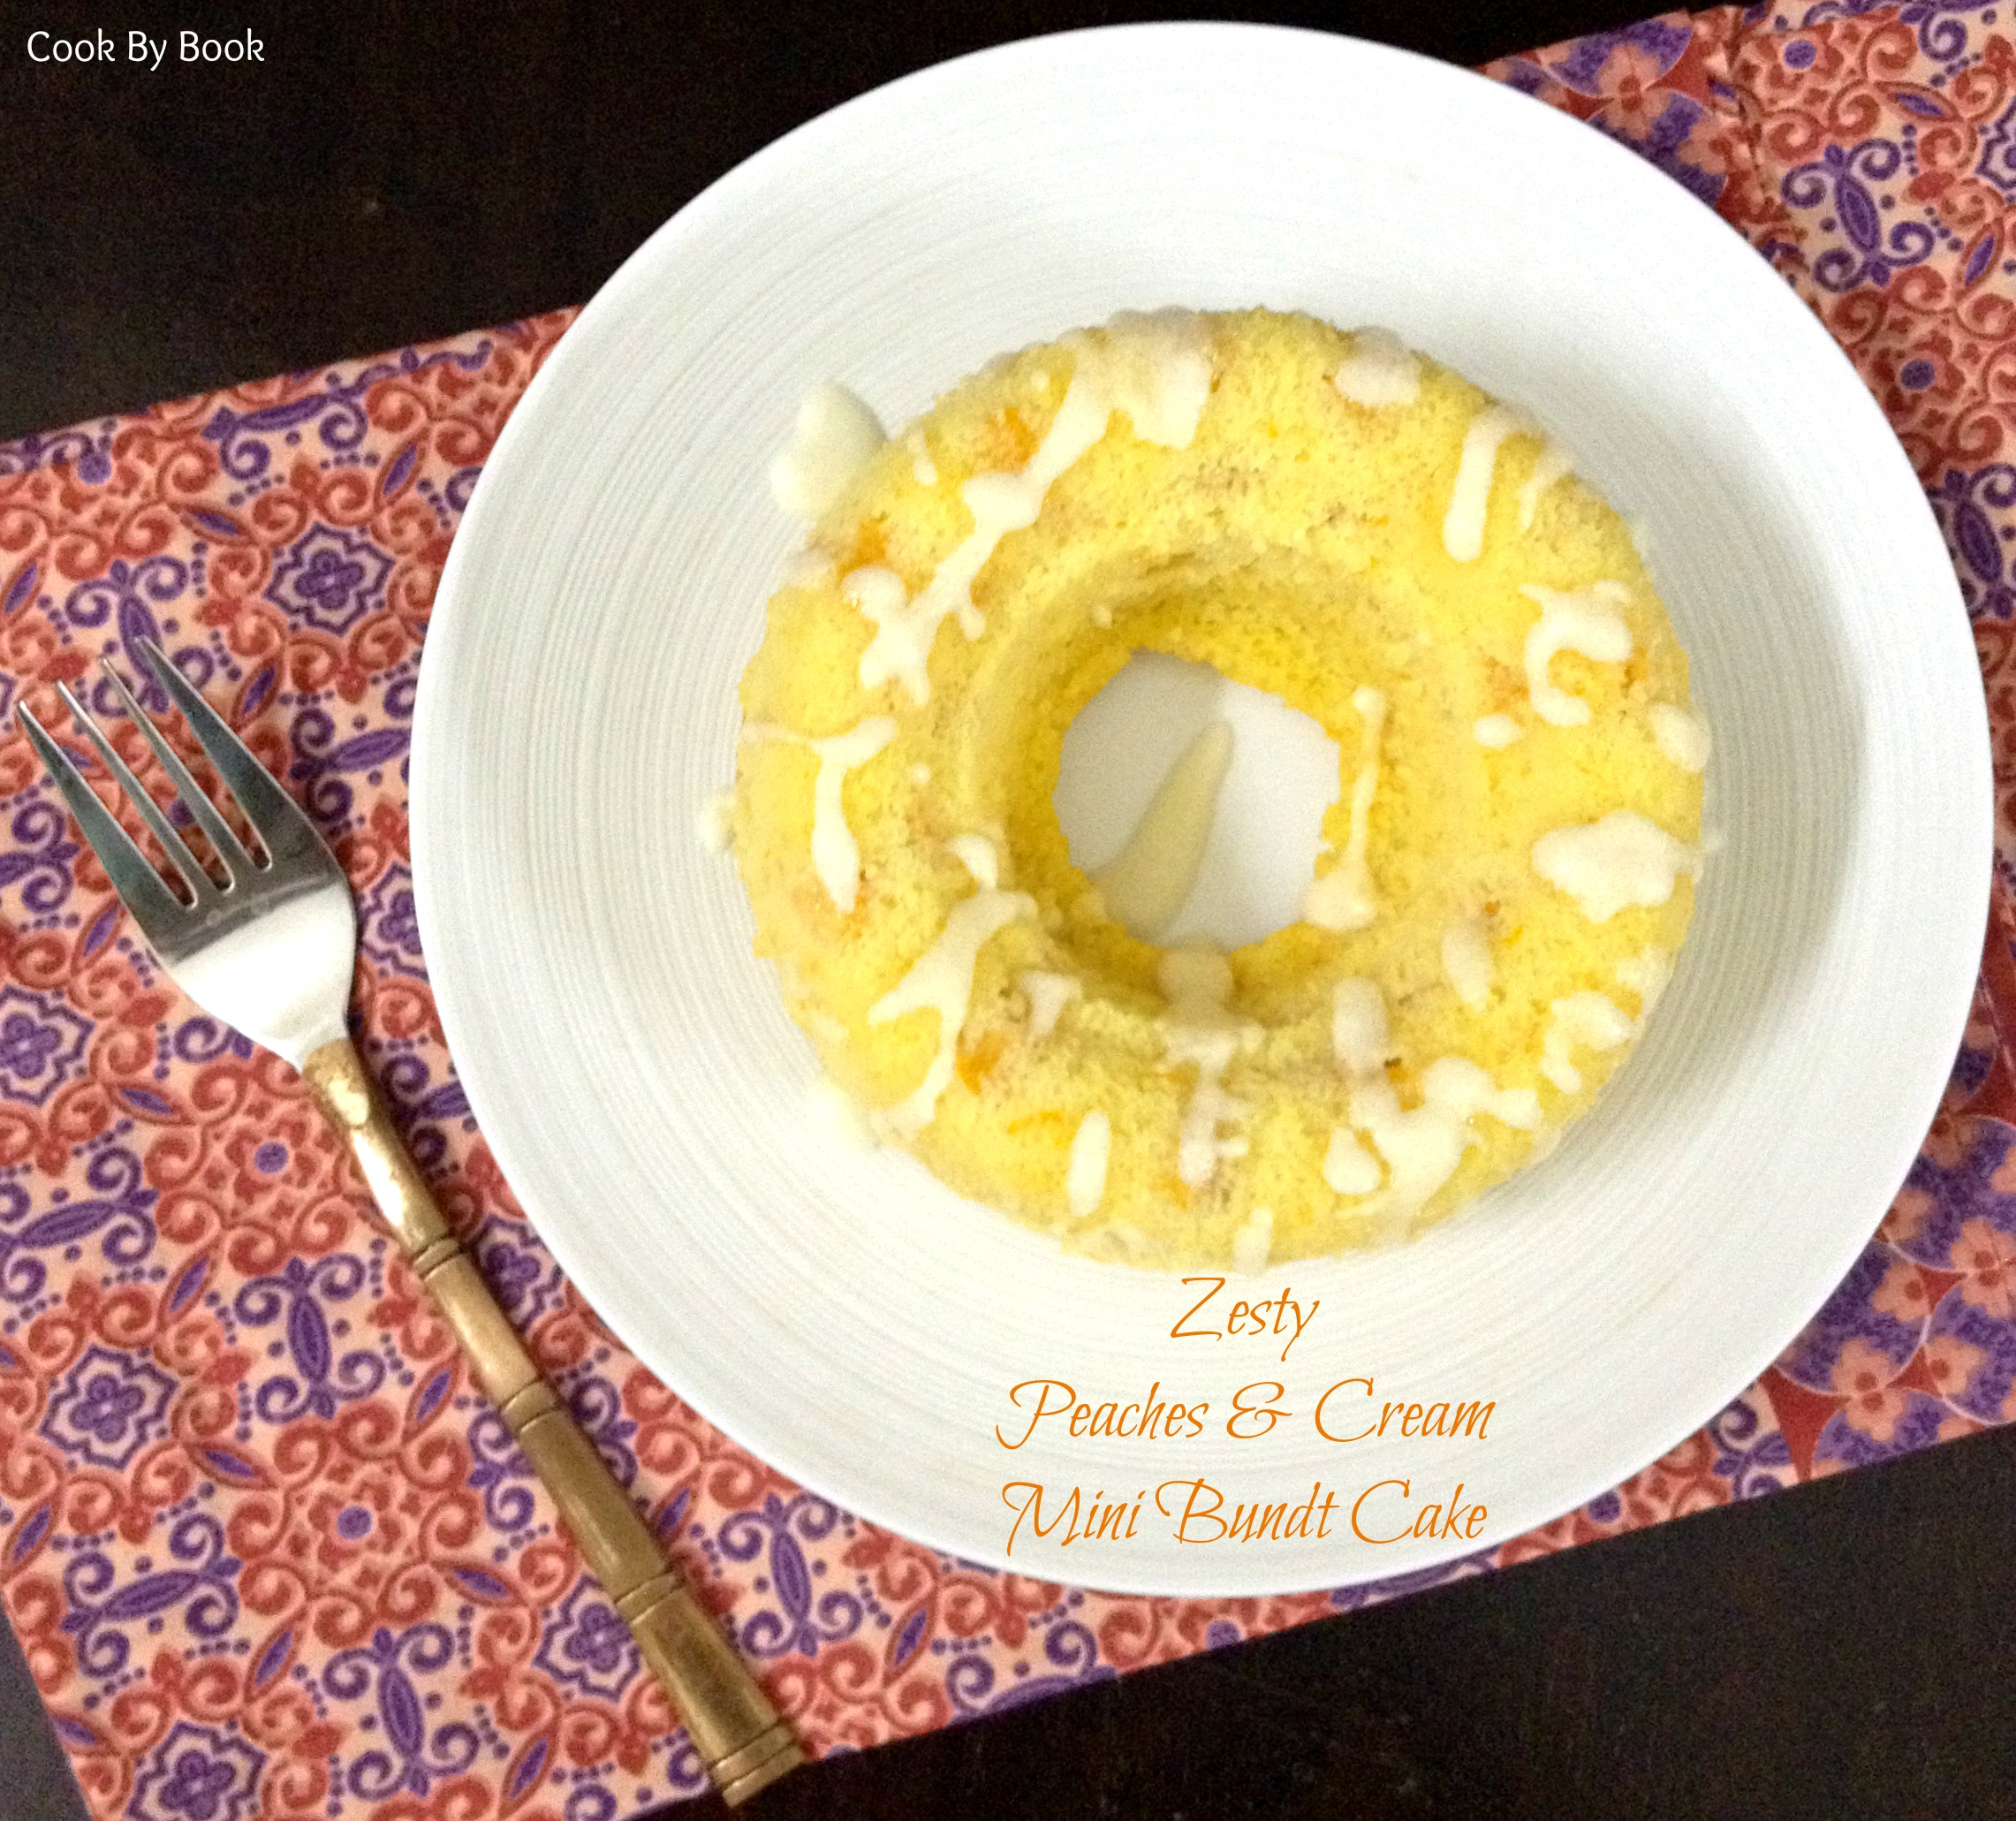 Zesty Peaches & Cream Mini Bundt Cake1